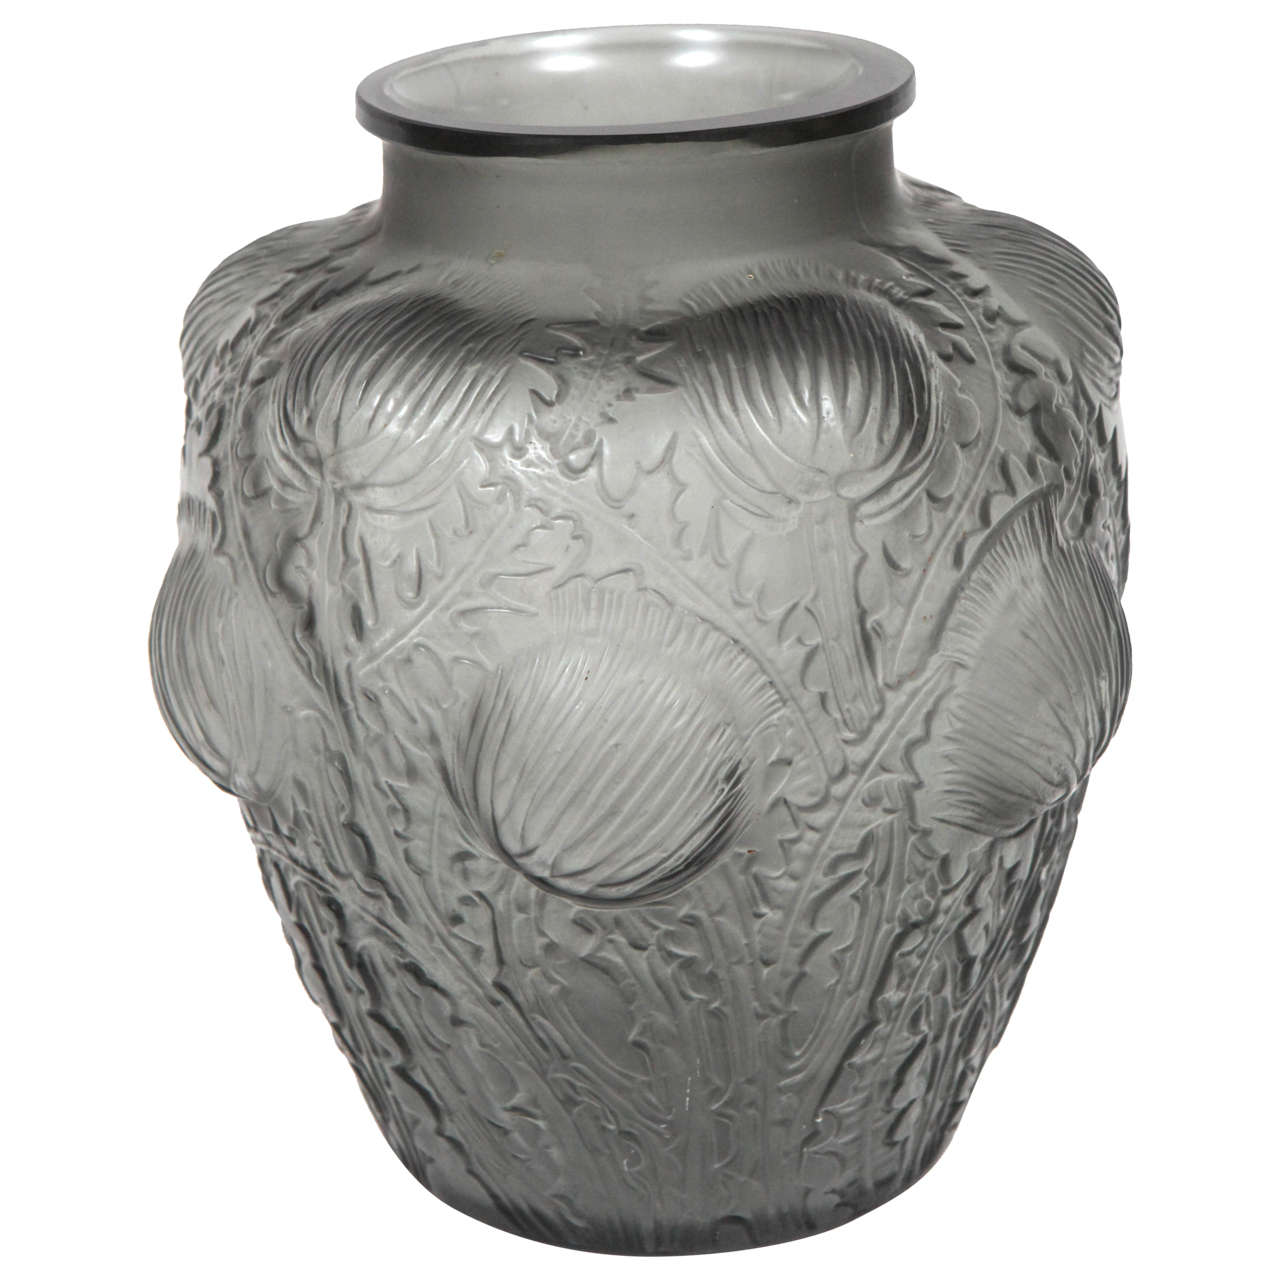 Rene lalique glass vase at 1stdibs for Lalique vase